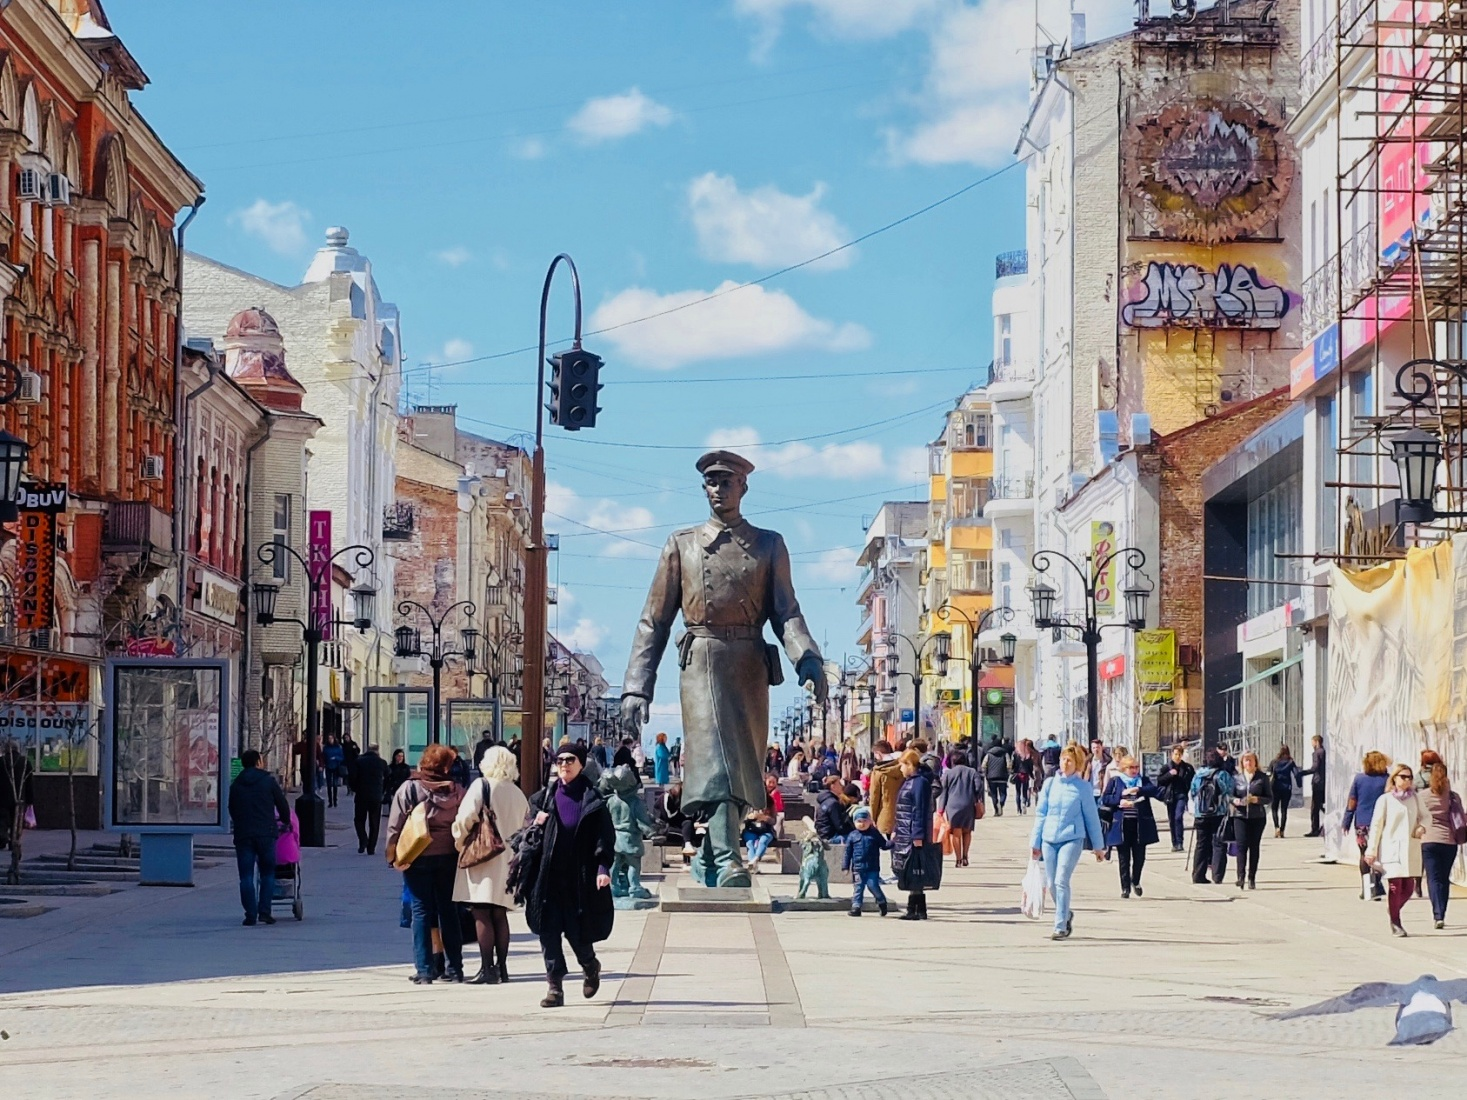 Larger than life statue of a man in Soviet-era uniform on busy street in downtown Samara, Russia.